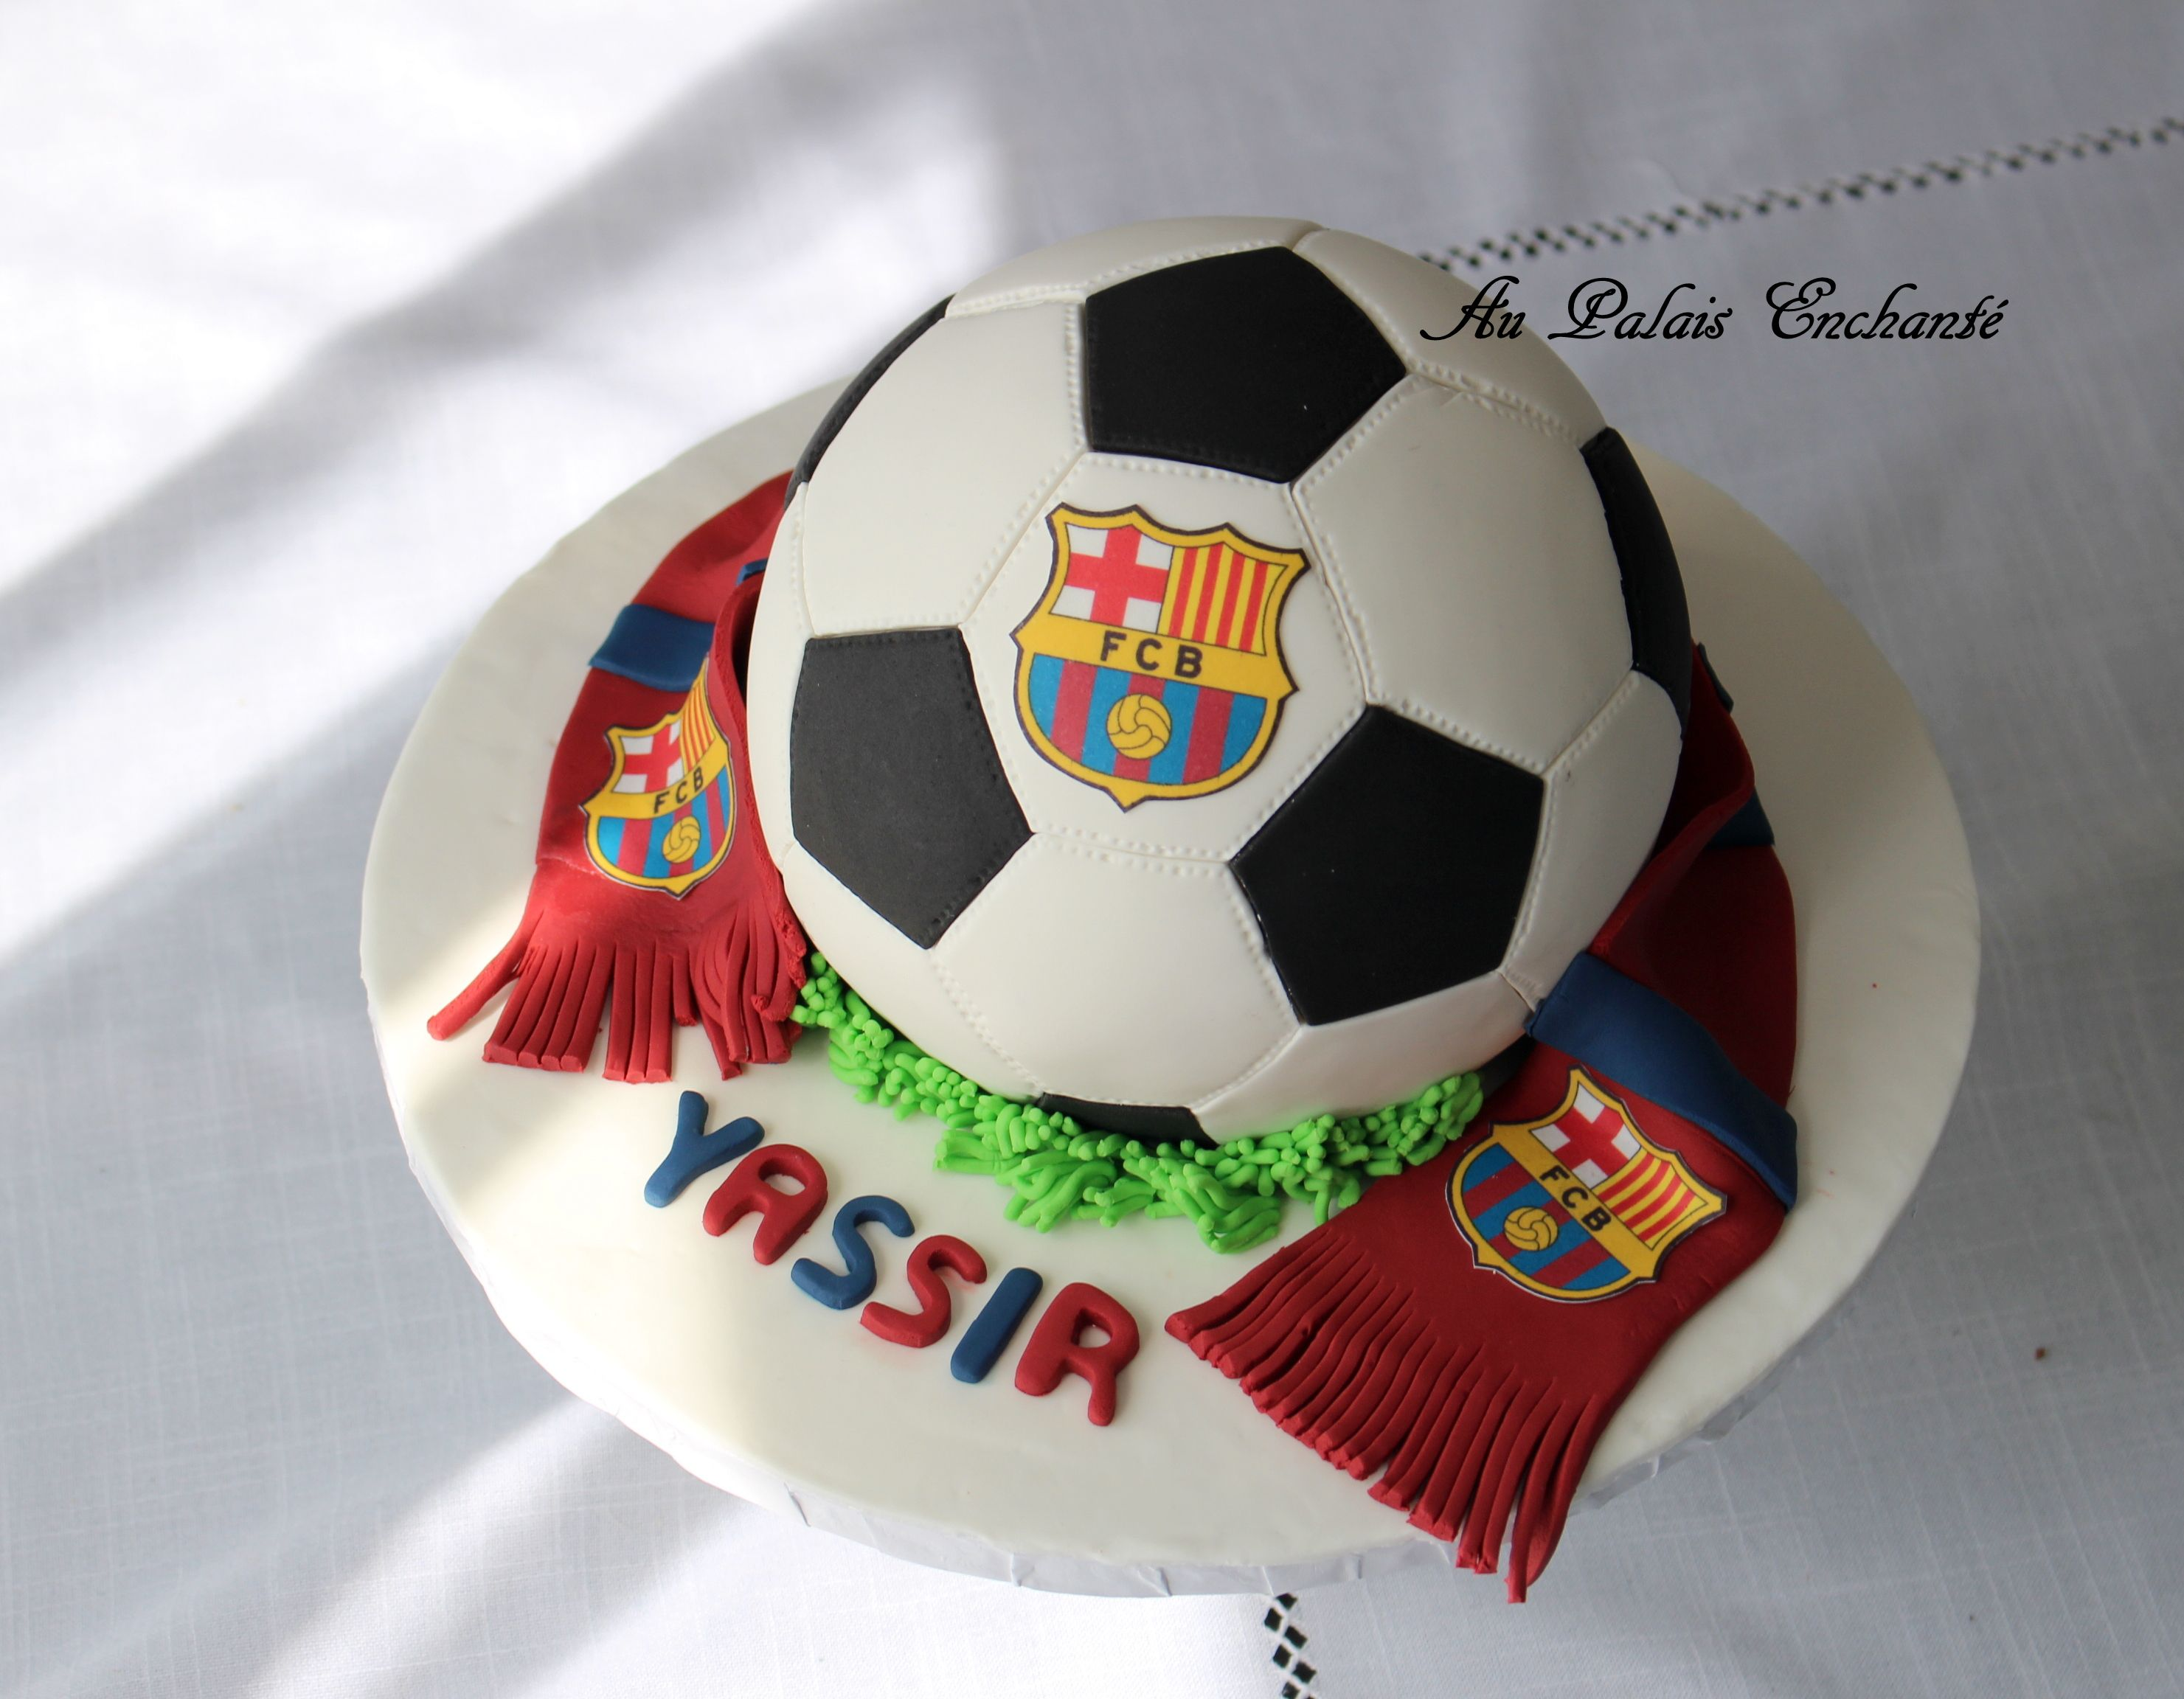 Image gateau ballon foot